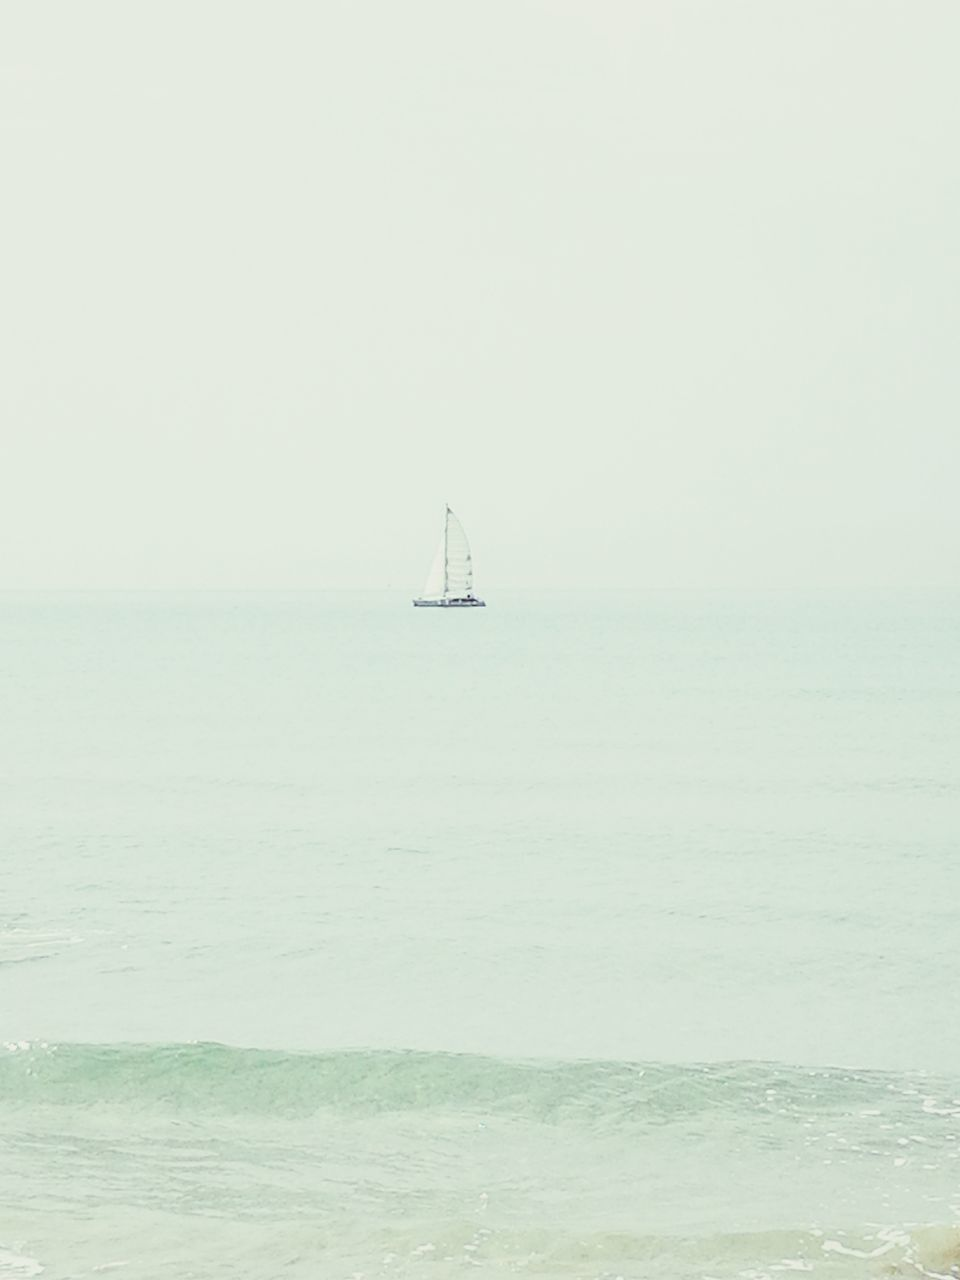 sea, horizon over water, water, scenics, beauty in nature, nature, tranquility, outdoors, waterfront, day, tranquil scene, no people, clear sky, sailboat, sky, nautical vessel, sailing